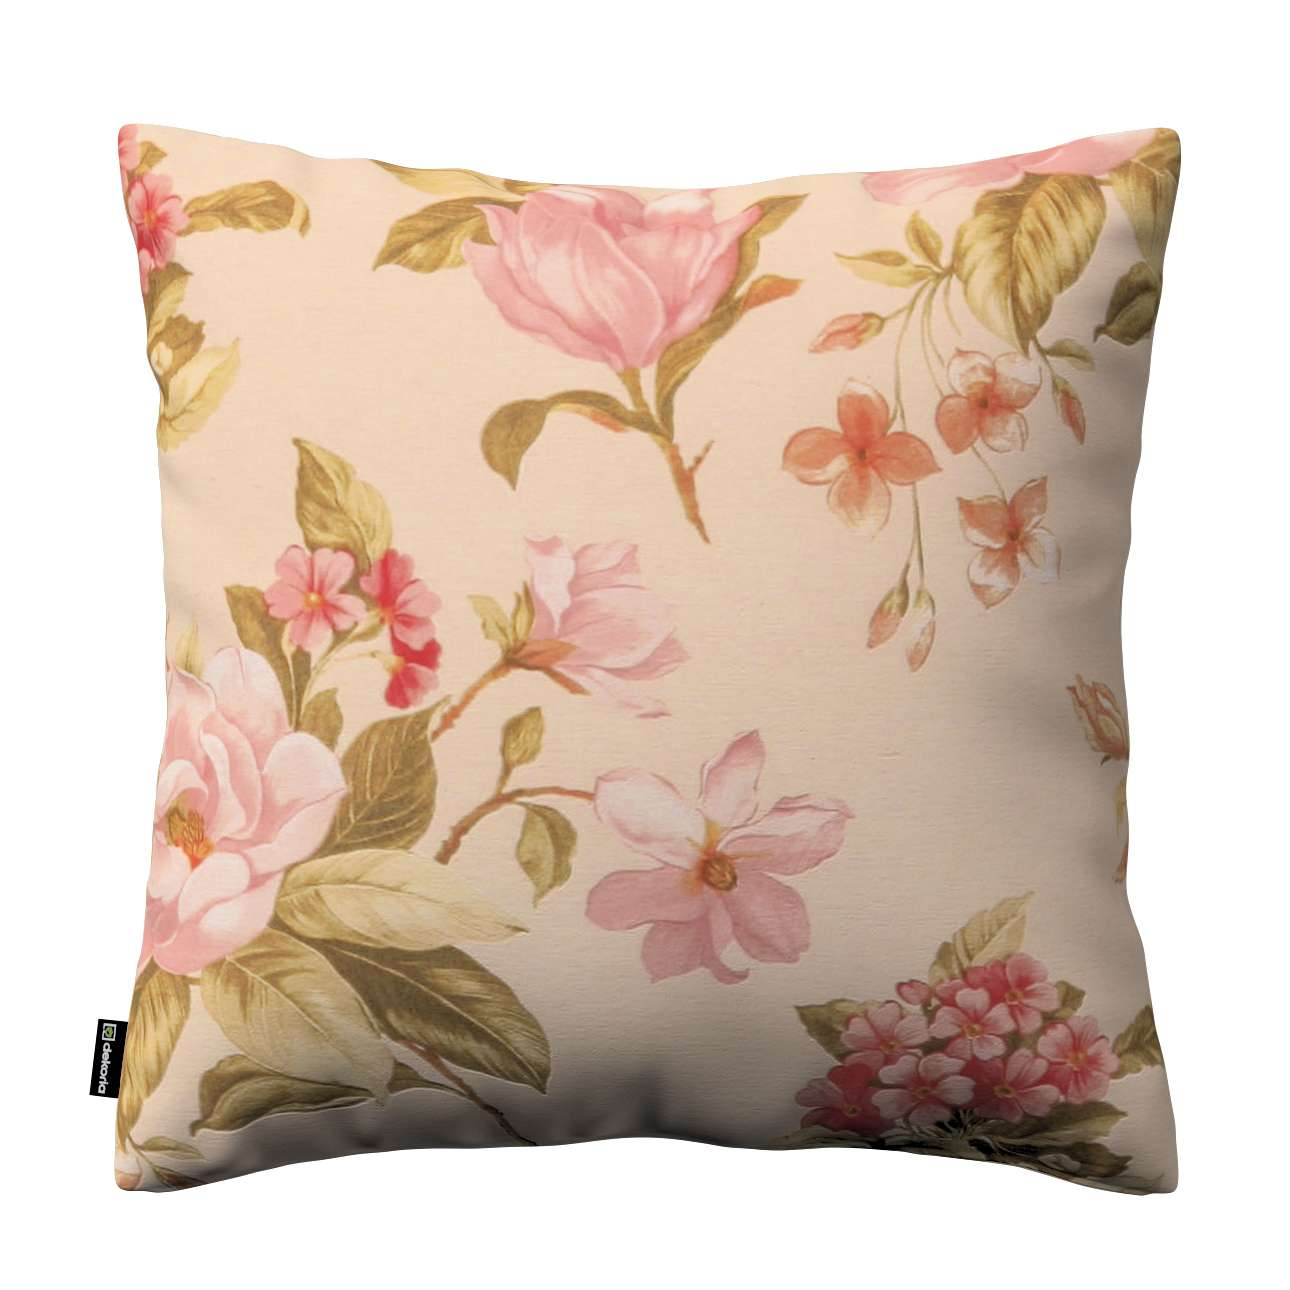 Kinga cushion cover 43 × 43 cm (17 × 17 inch) in collection Londres, fabric: 123-05